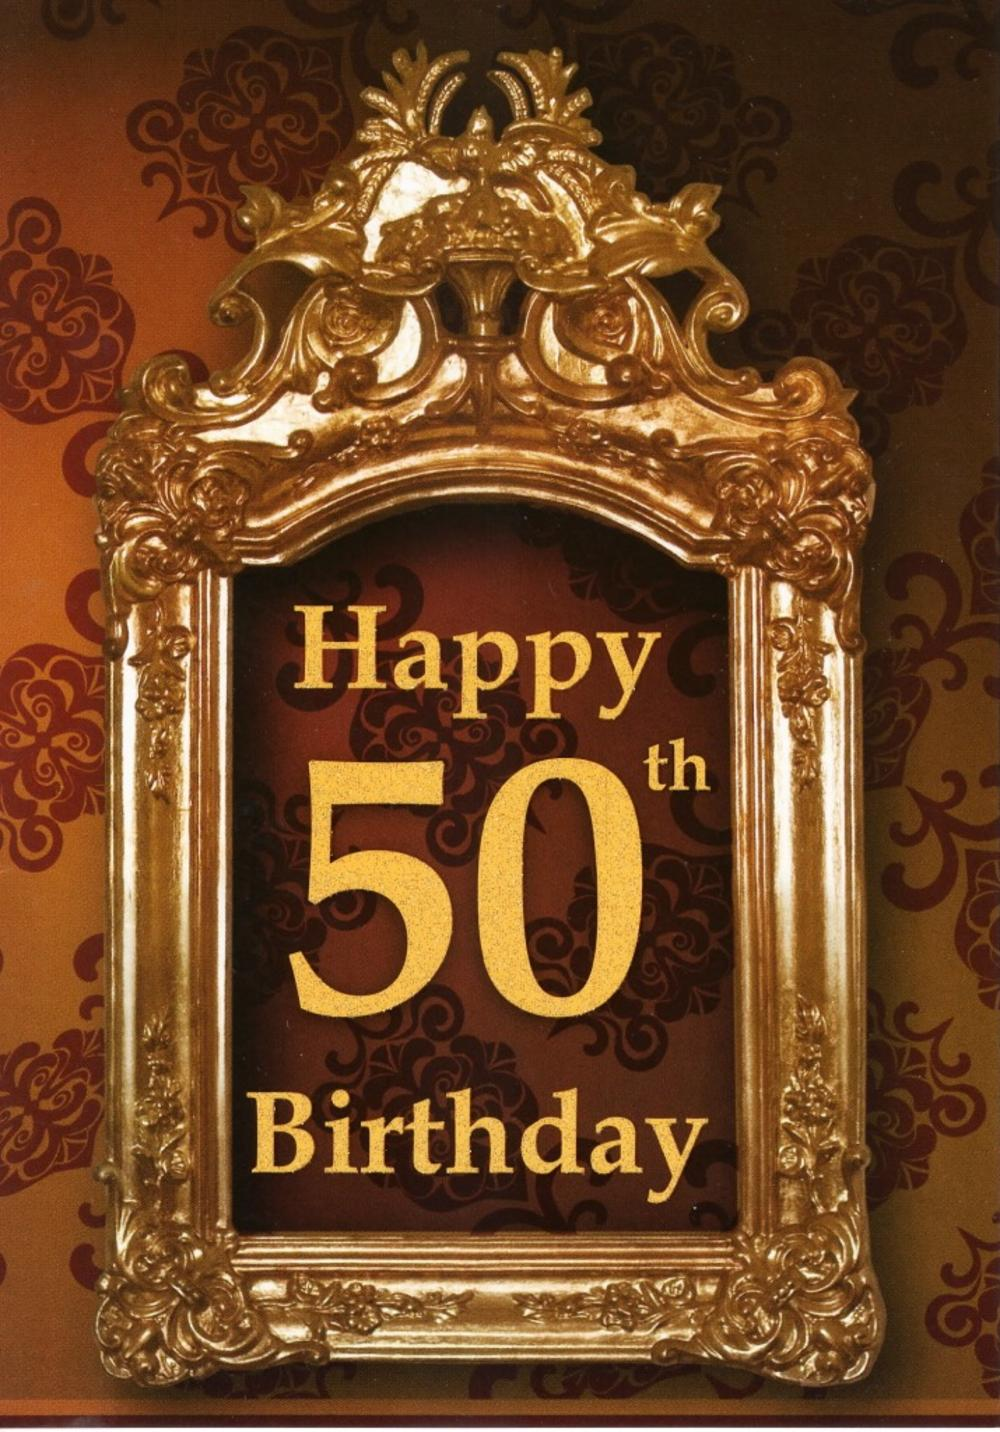 50 years birthday greeting cards ; lrgscaleBirthday%2520cards%2520031013%2520006